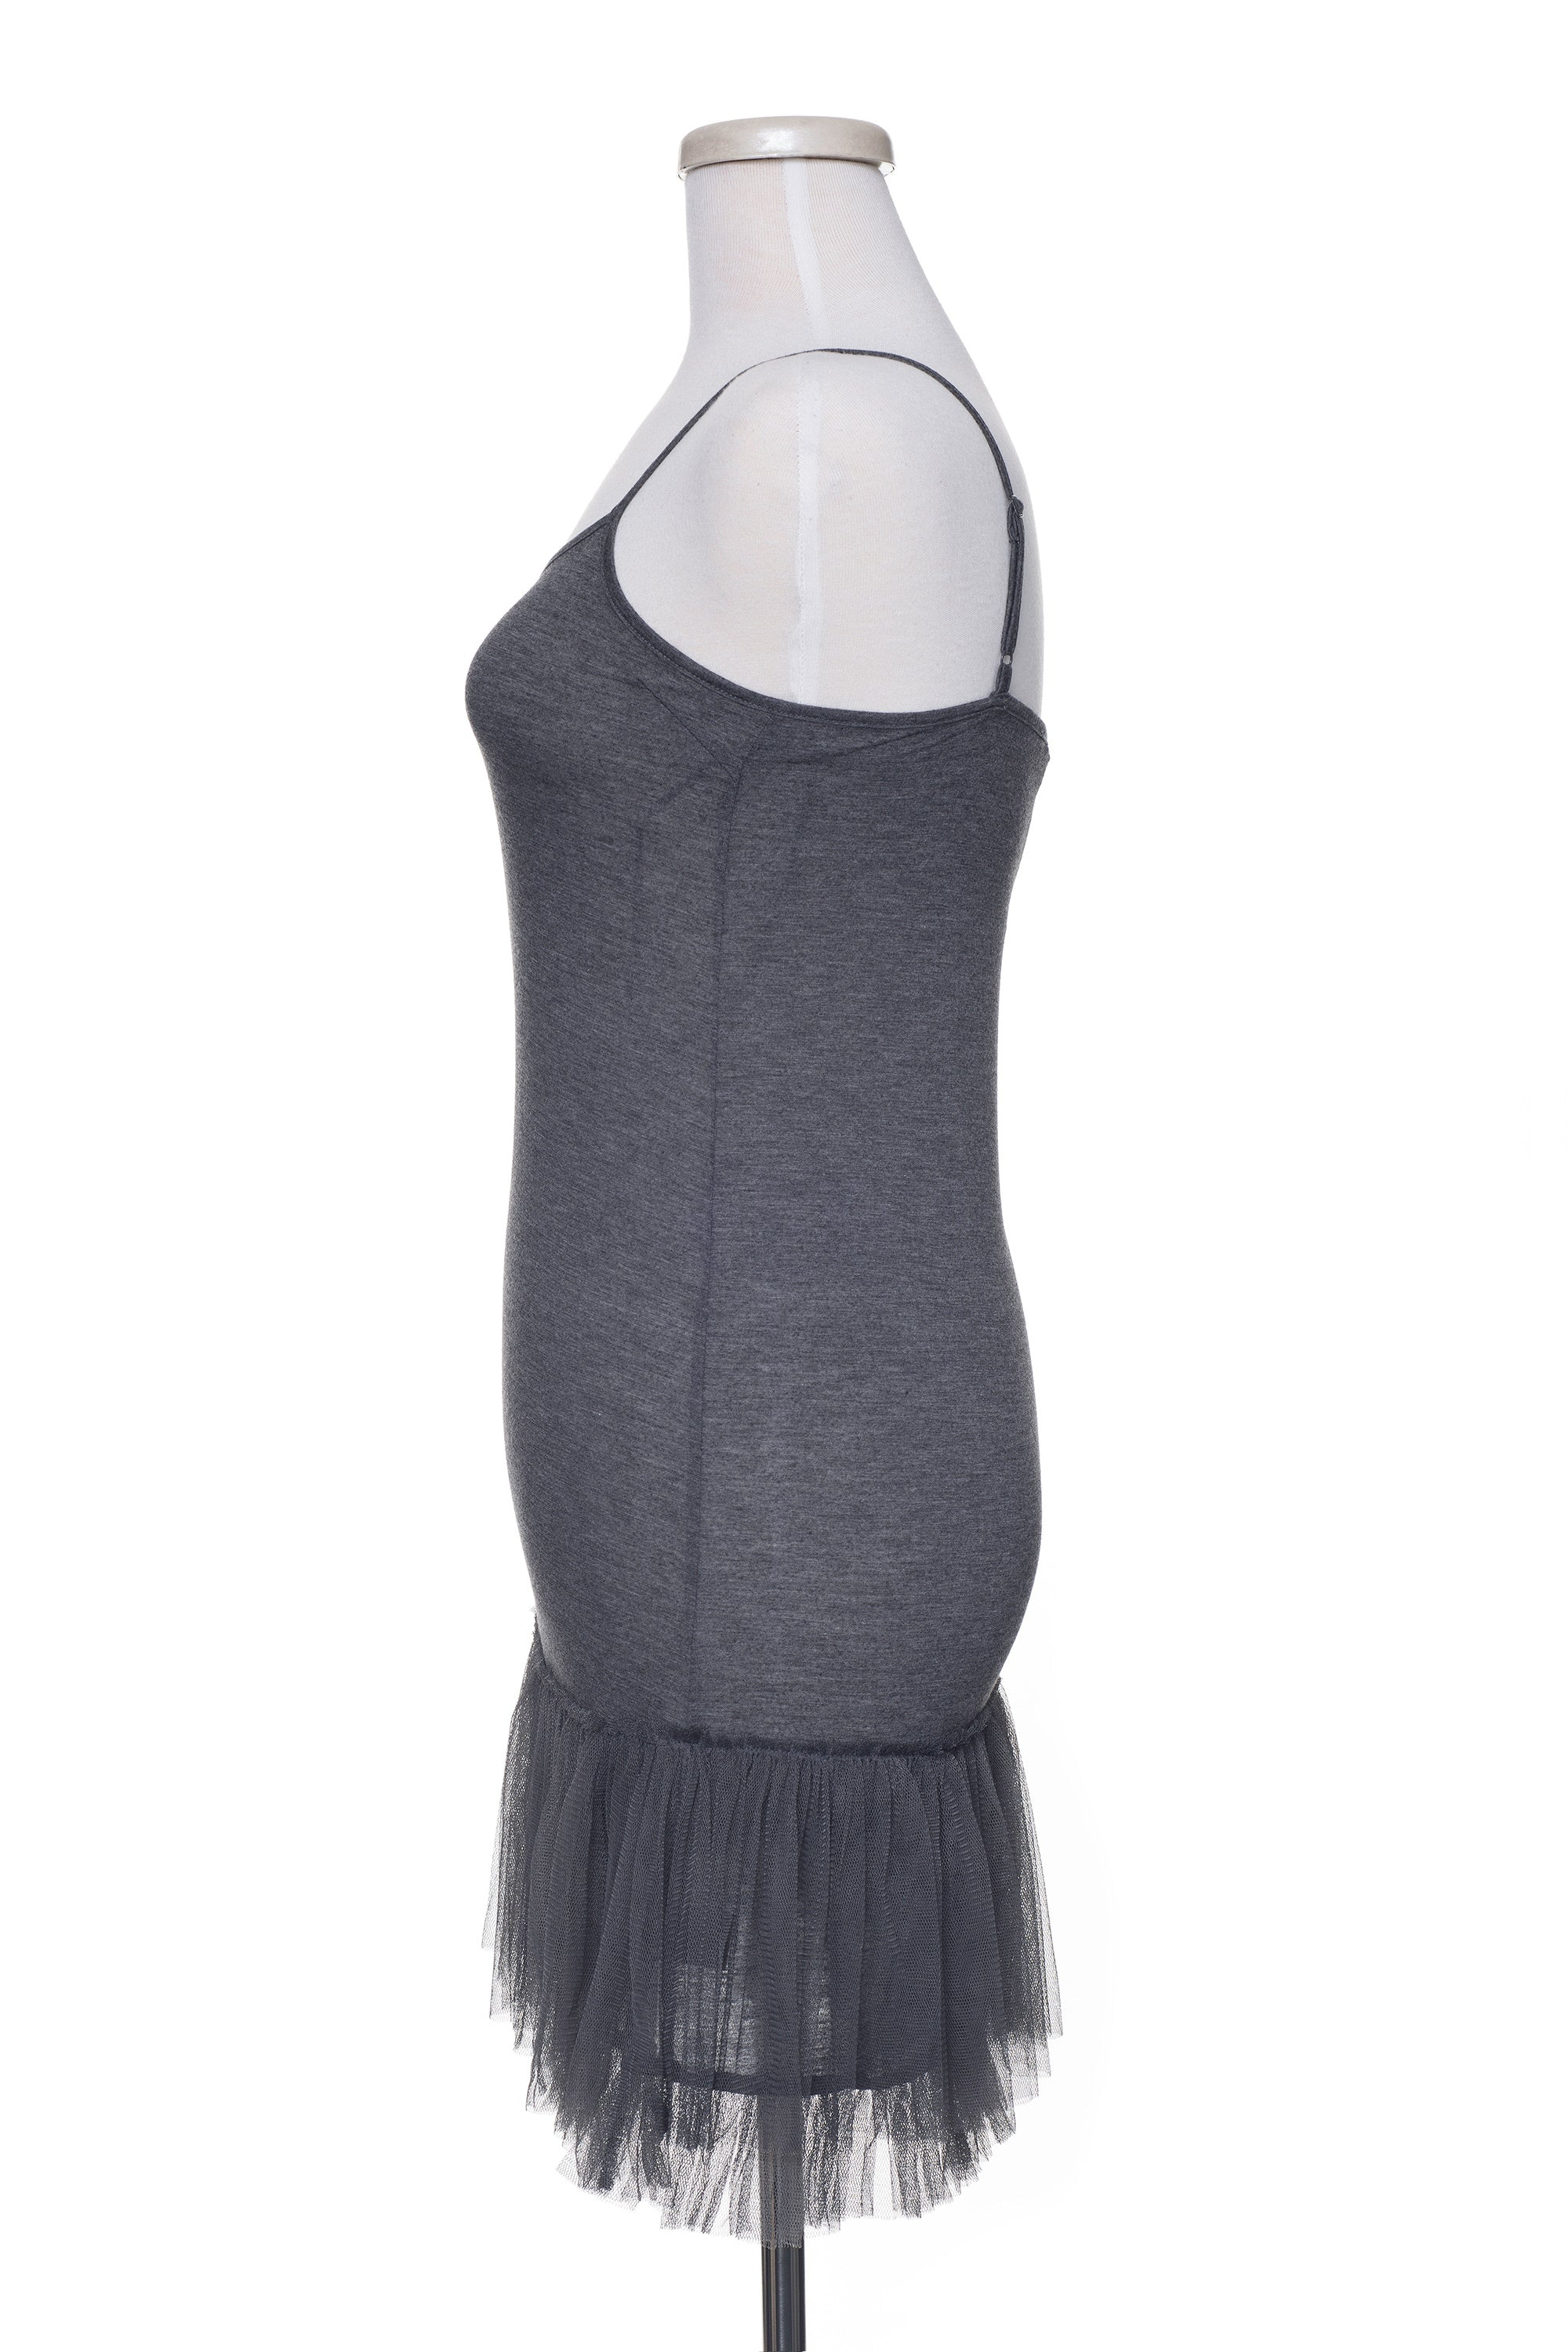 Type 2 Tulle Extender Slip in Charcoal